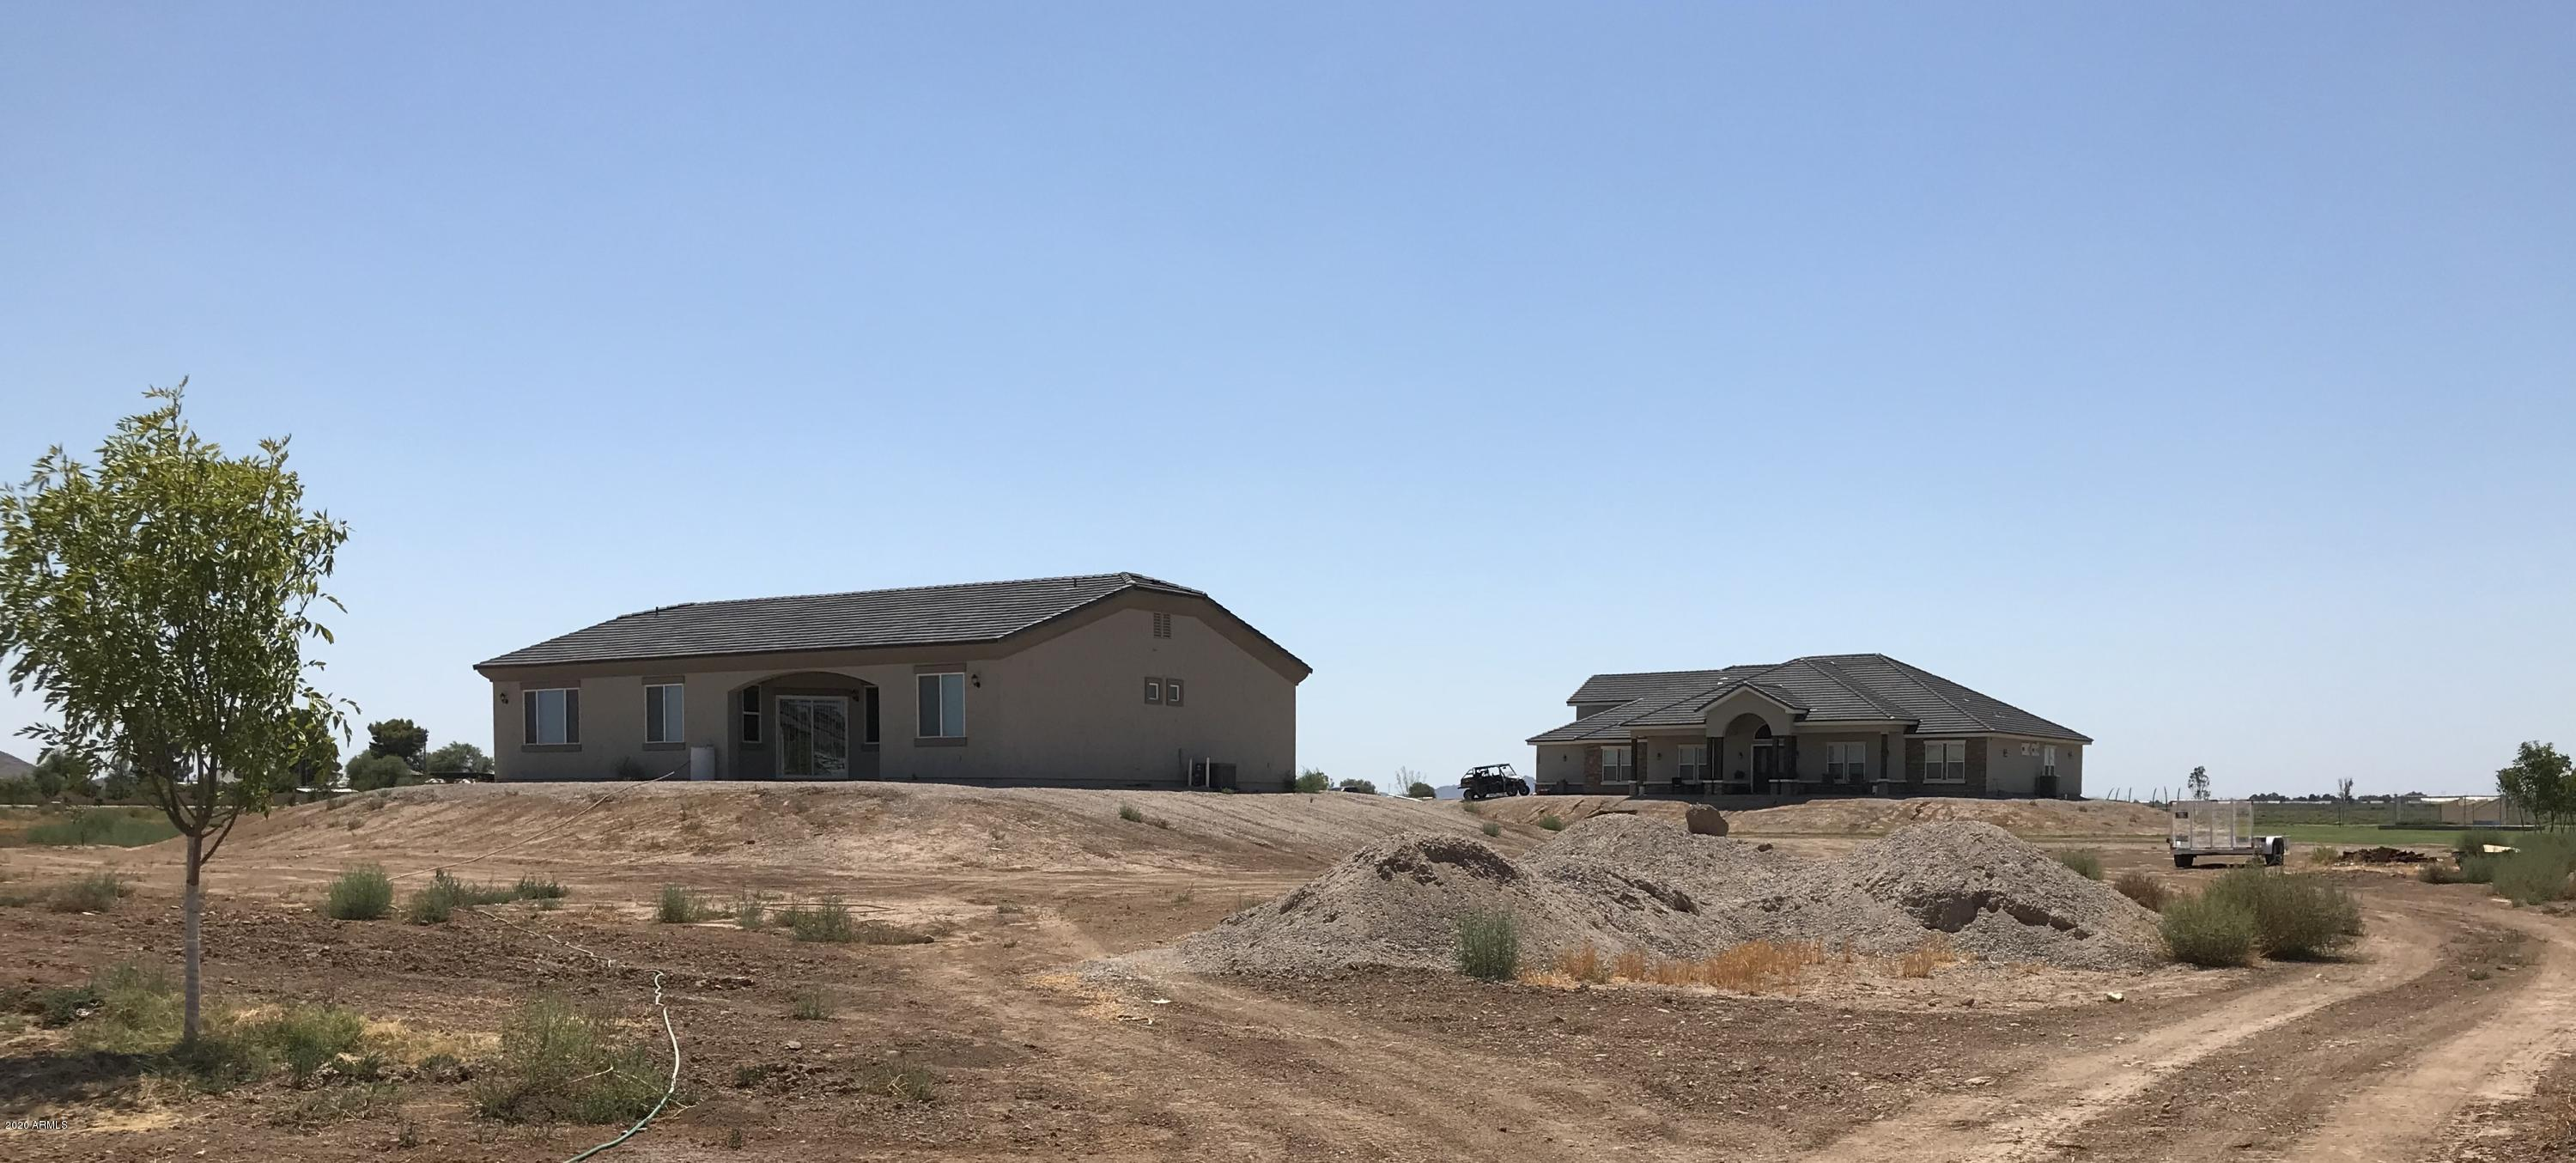 MLS 6111698 8512 S 229th Lane, Buckeye, AZ 85326 Buckeye AZ Newly Built